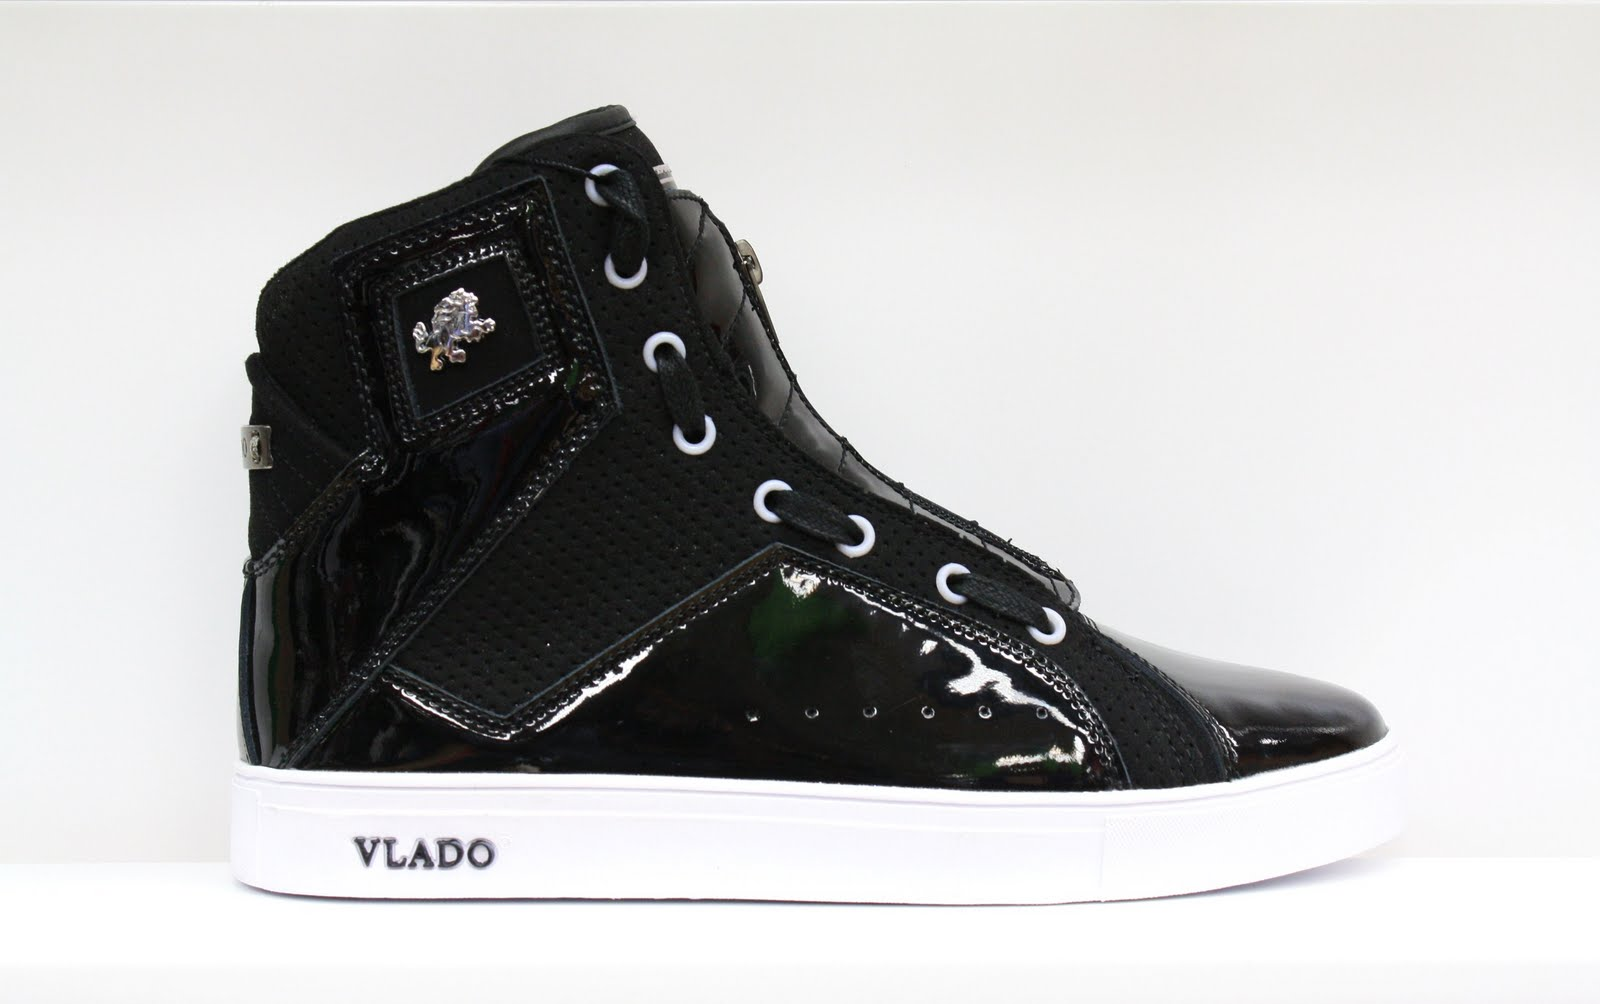 Dr Jays Stores New Vlado Sneakers Available In Drjays Stores